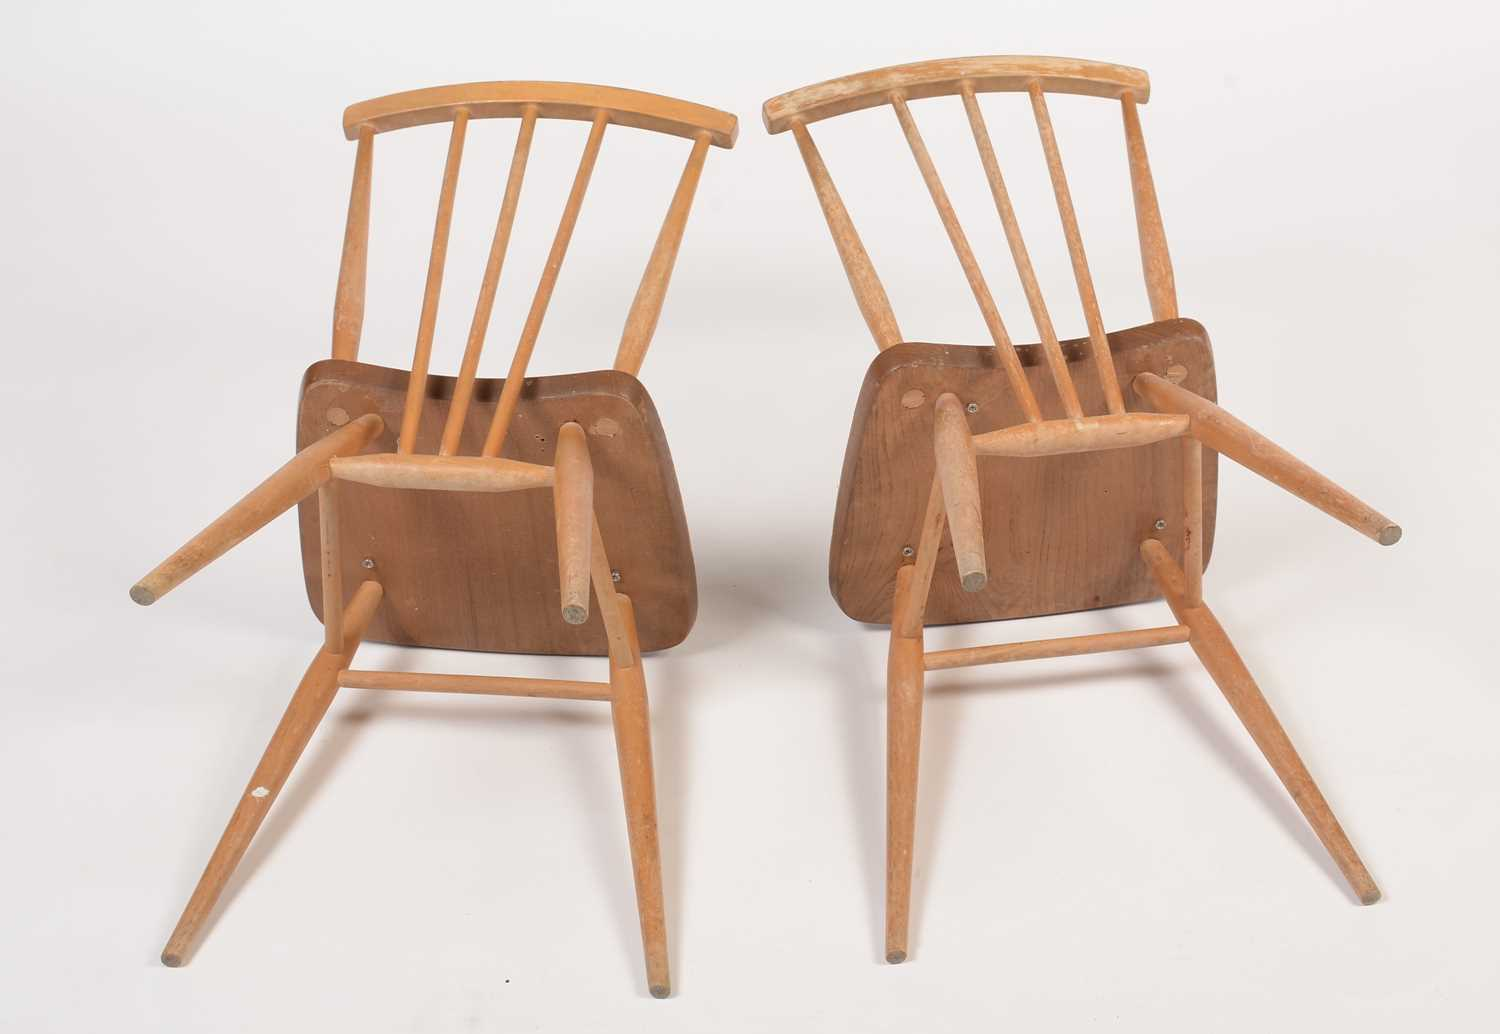 Ercol: four all-purpose Windsor chairs, No 391 - Image 2 of 5